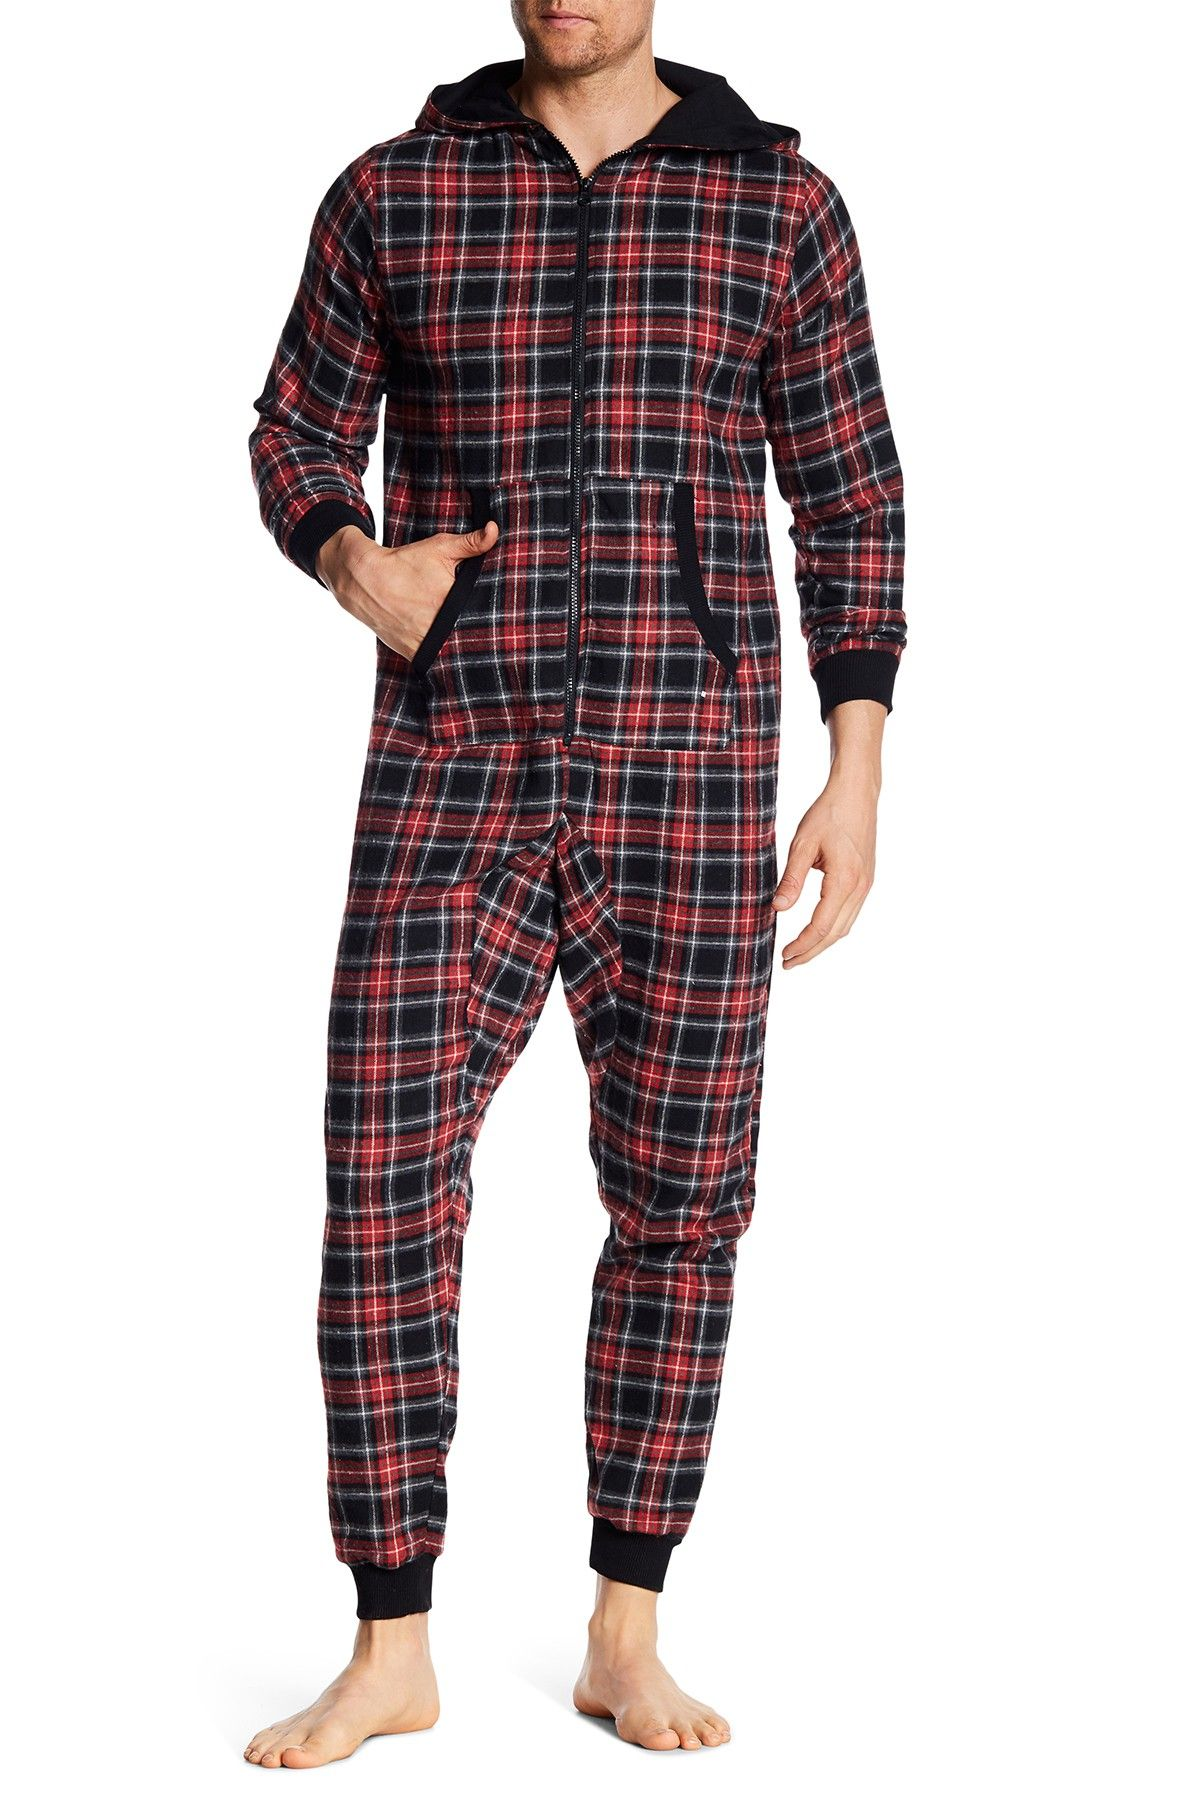 Bottoms Out Flannel Pajama Jumpsuit Mens onesie